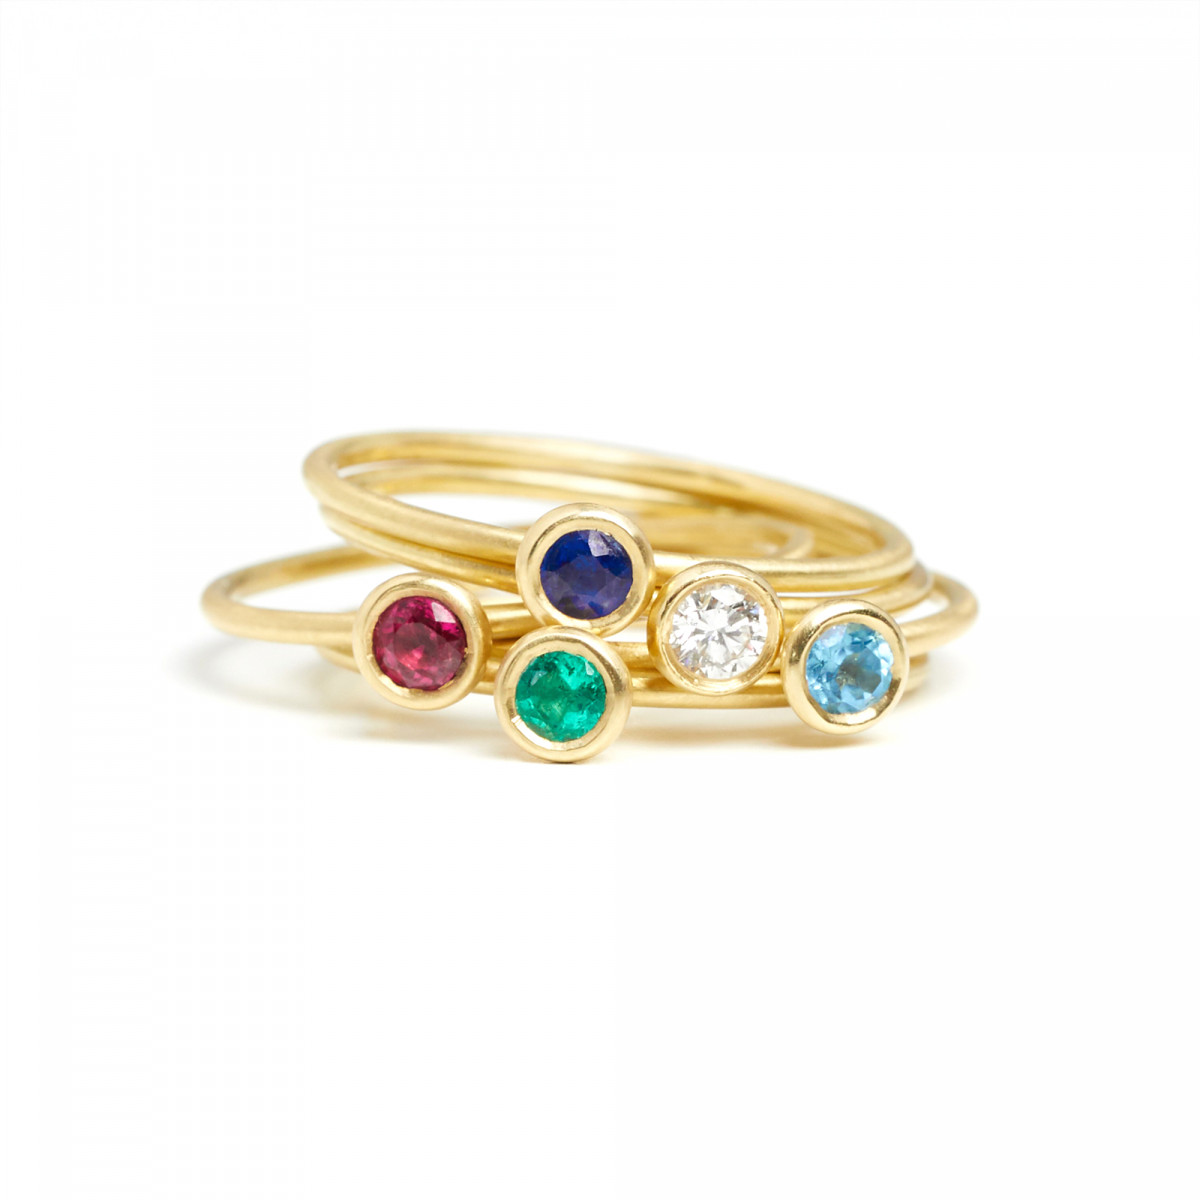 E-commerce photography of gold and gem rings